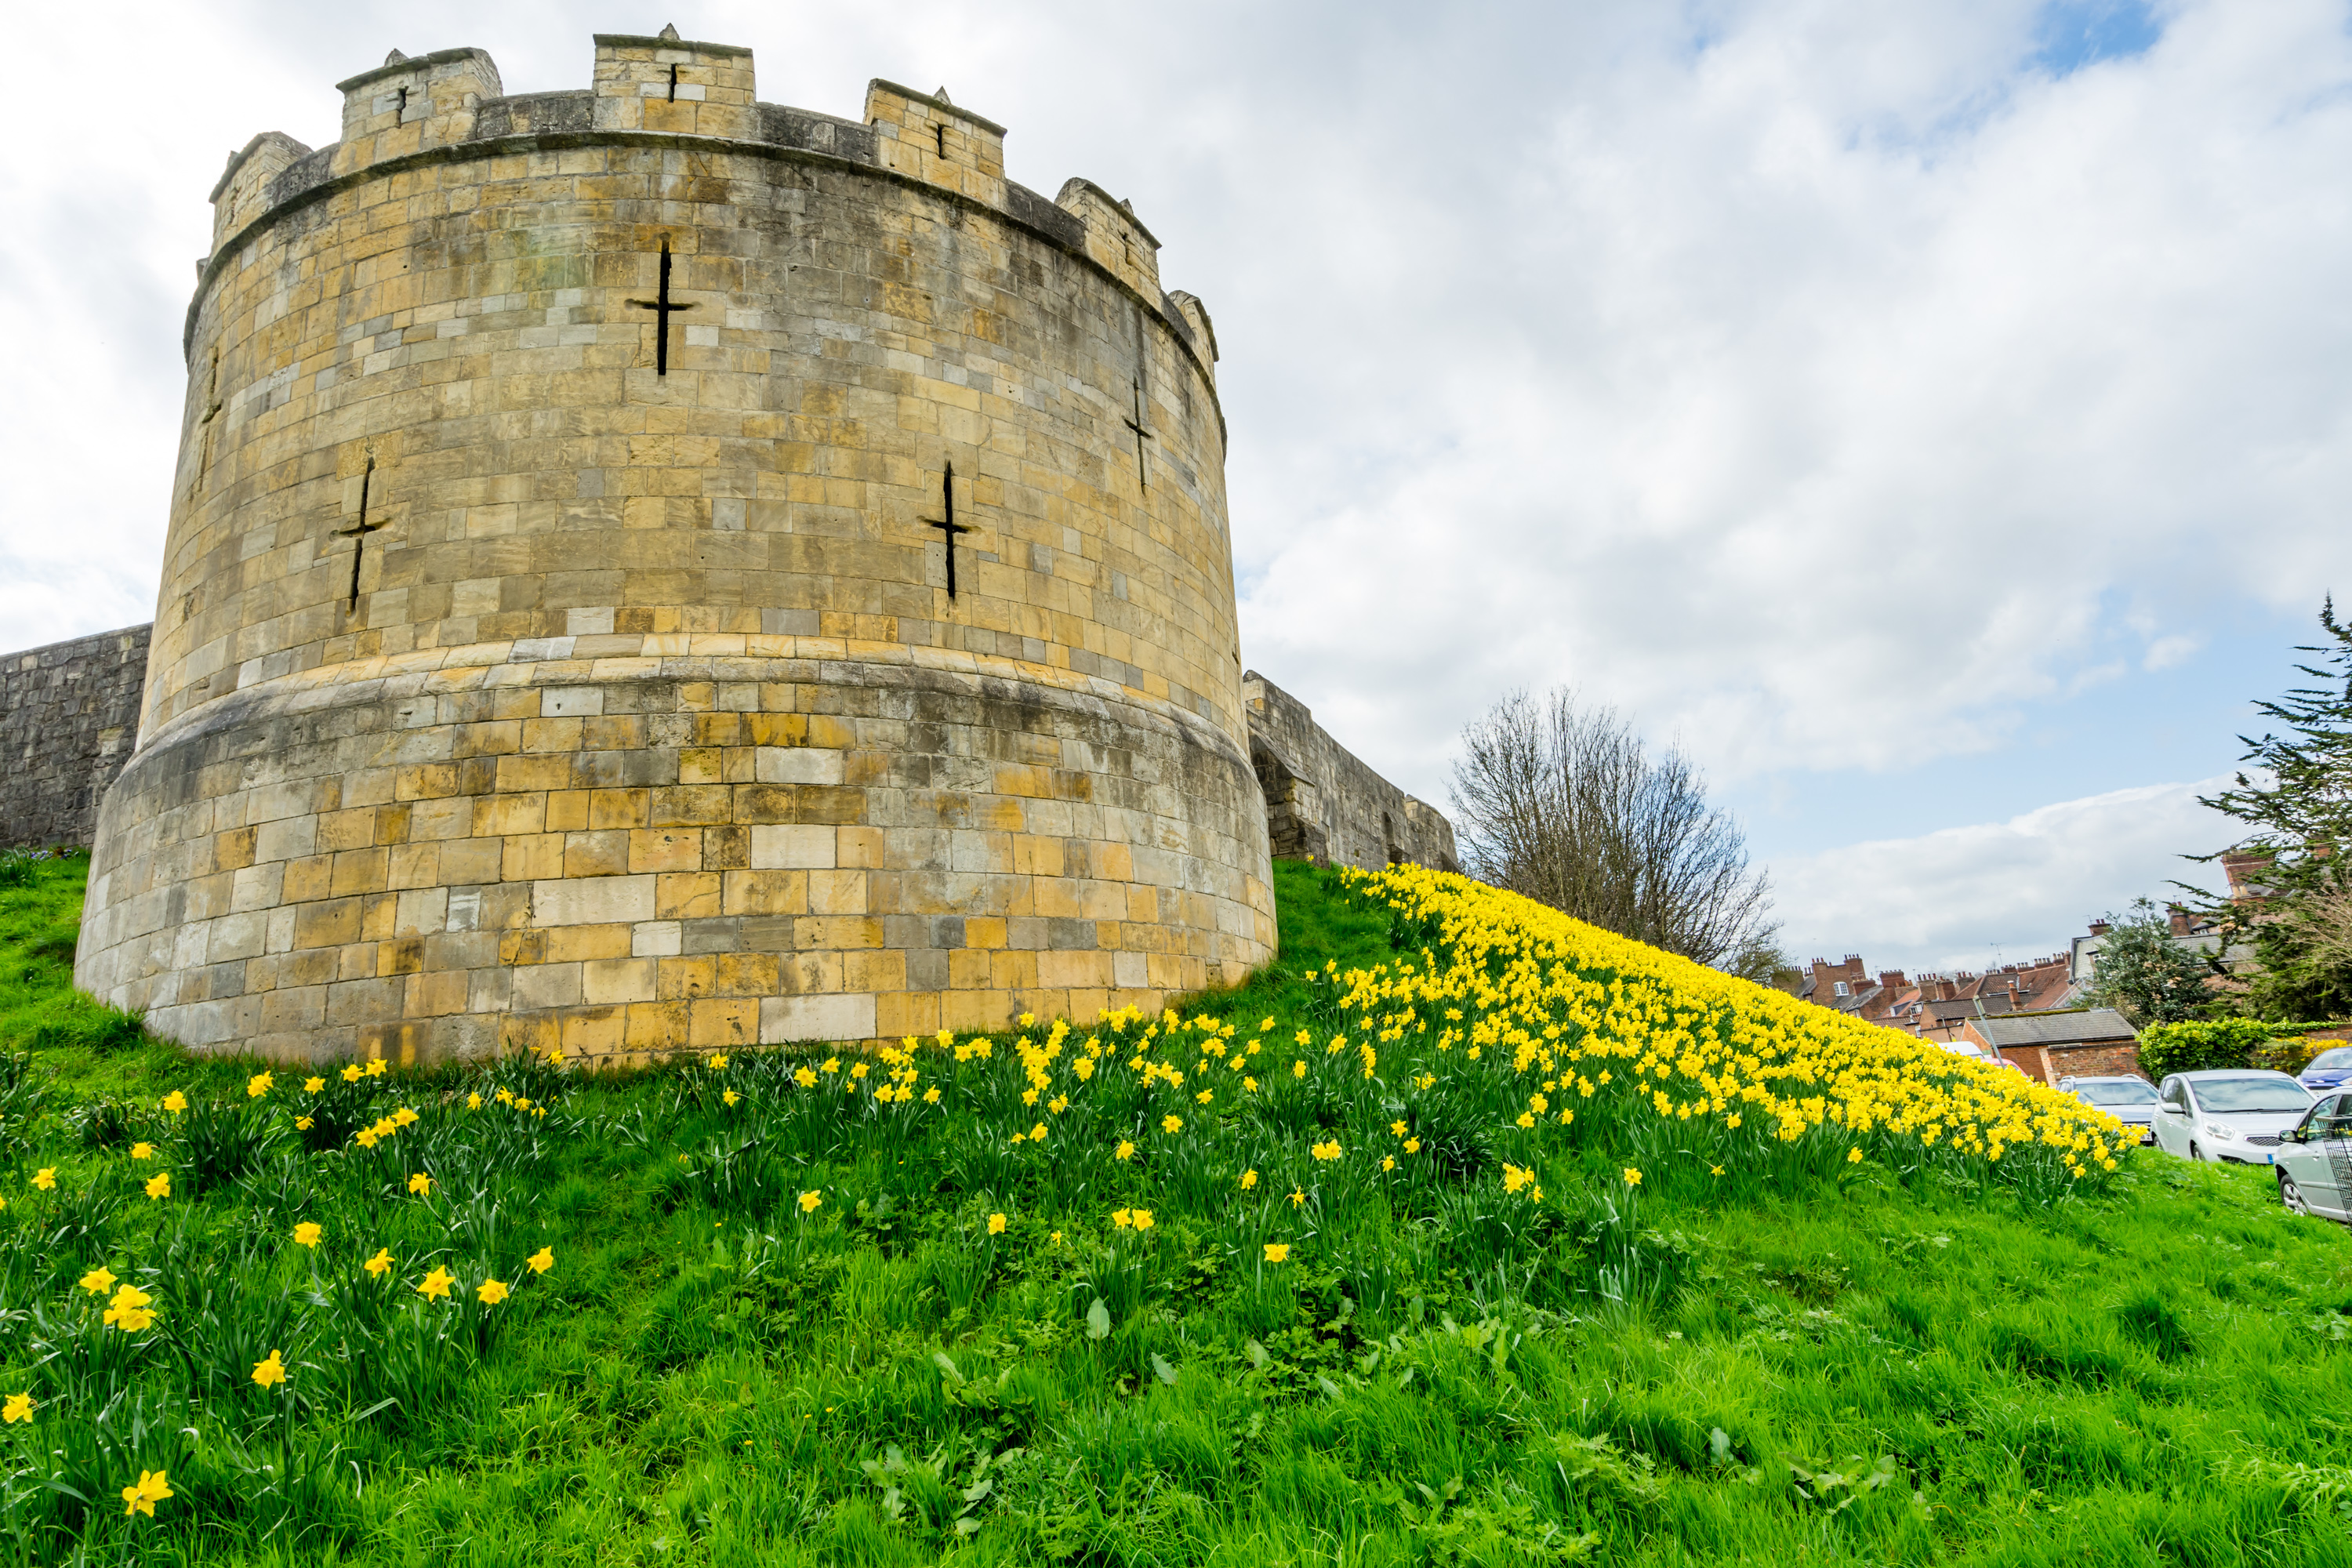 View of the Walls showing why you should buy a property in York